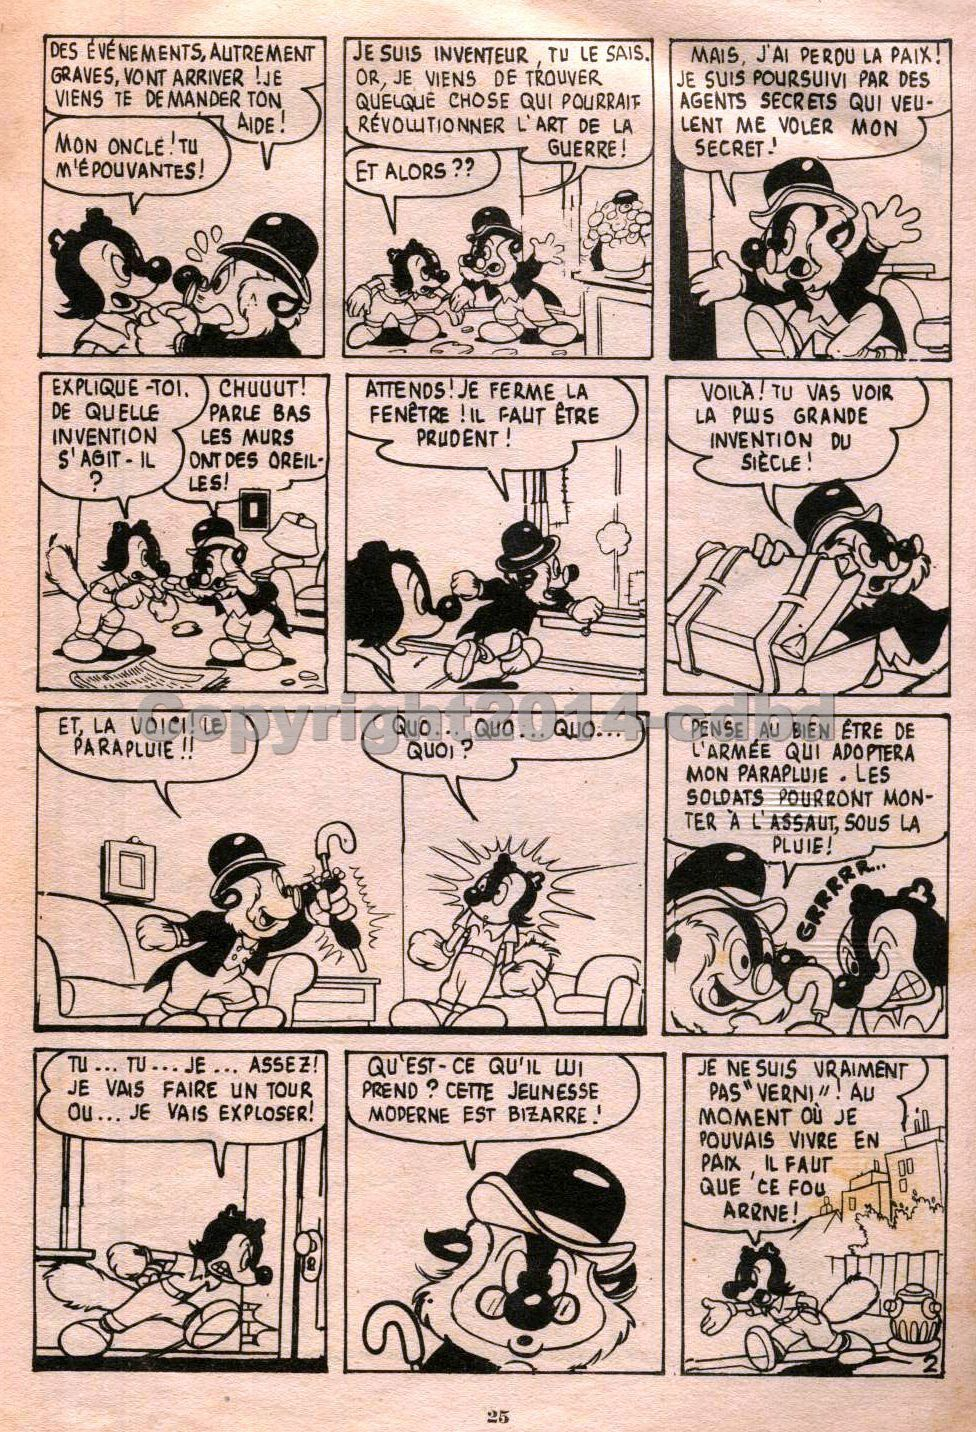 Bimbo trimestriel n°8  d'Octobre 1957- Pages 20 à 32